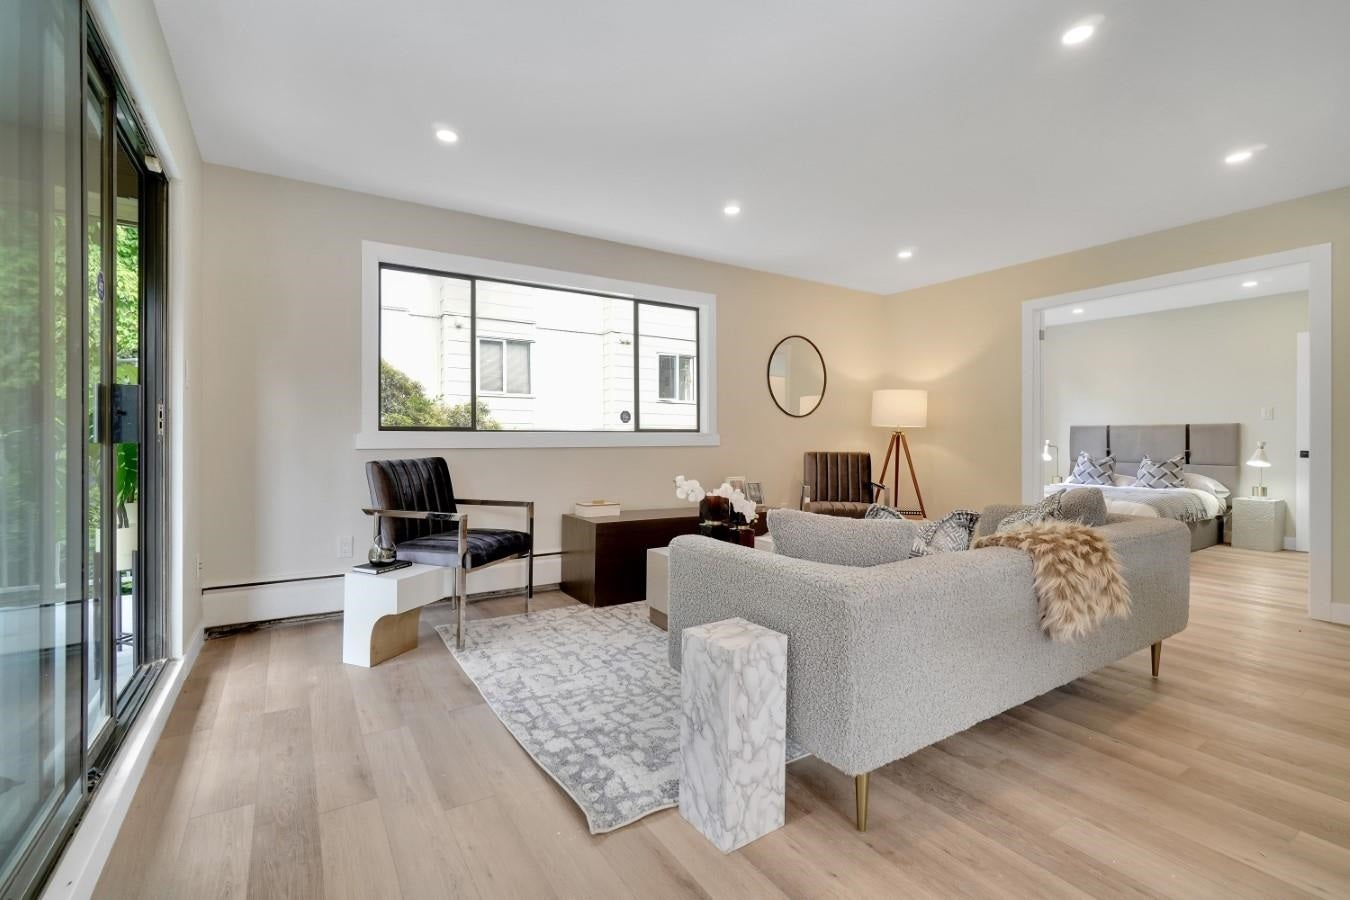 206 330 W 2ND STREET - Lower Lonsdale Apartment/Condo for sale, 2 Bedrooms (R2604160) - #9